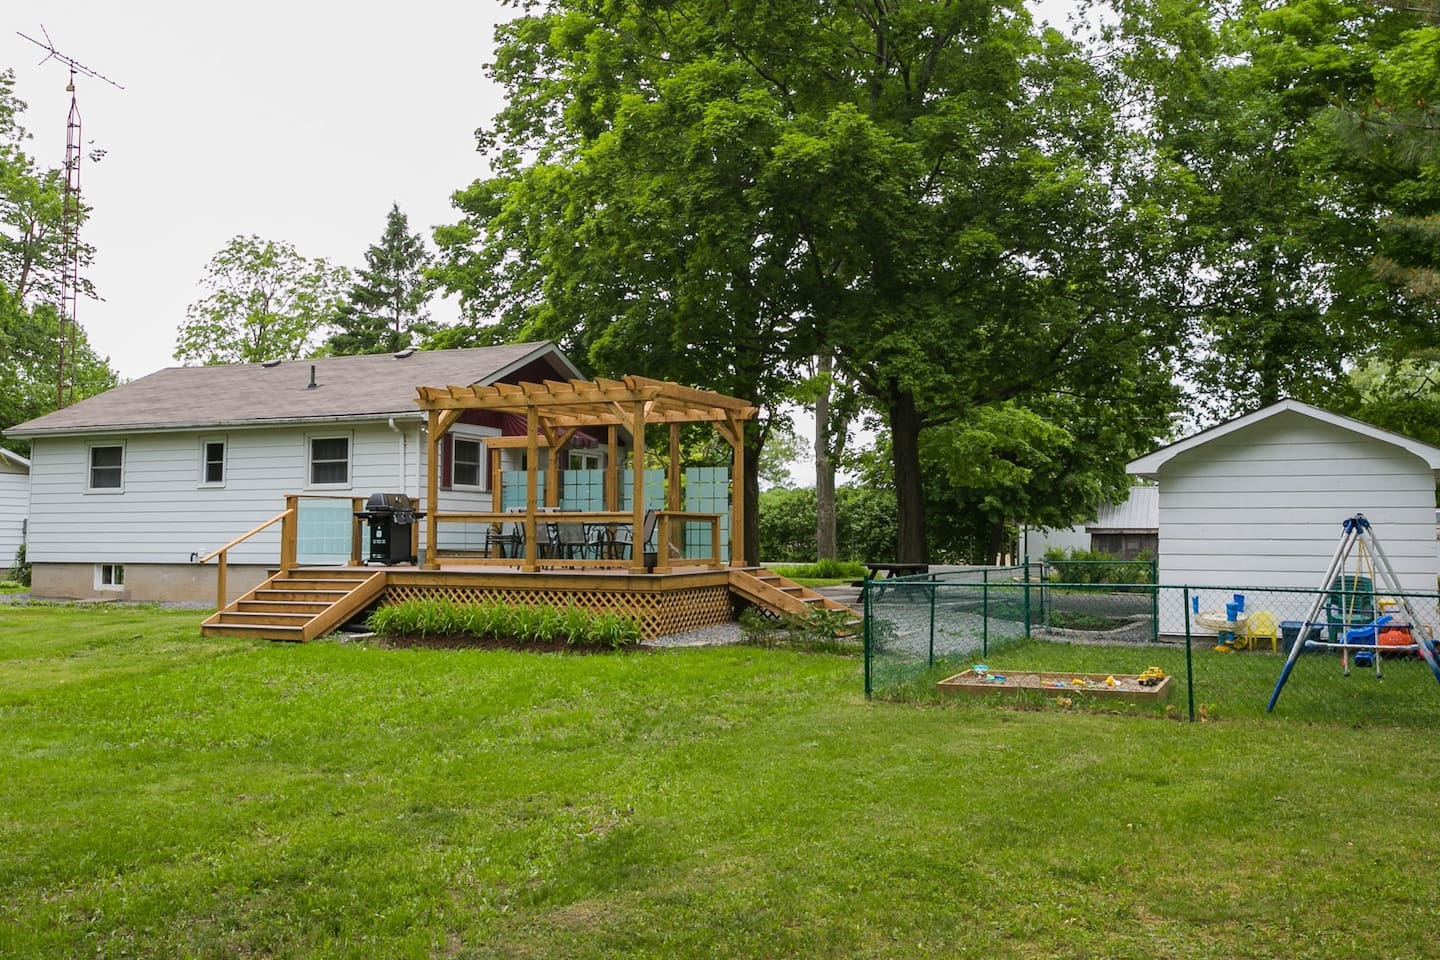 Private one acre property for family fun, room for everyone to play and relax.